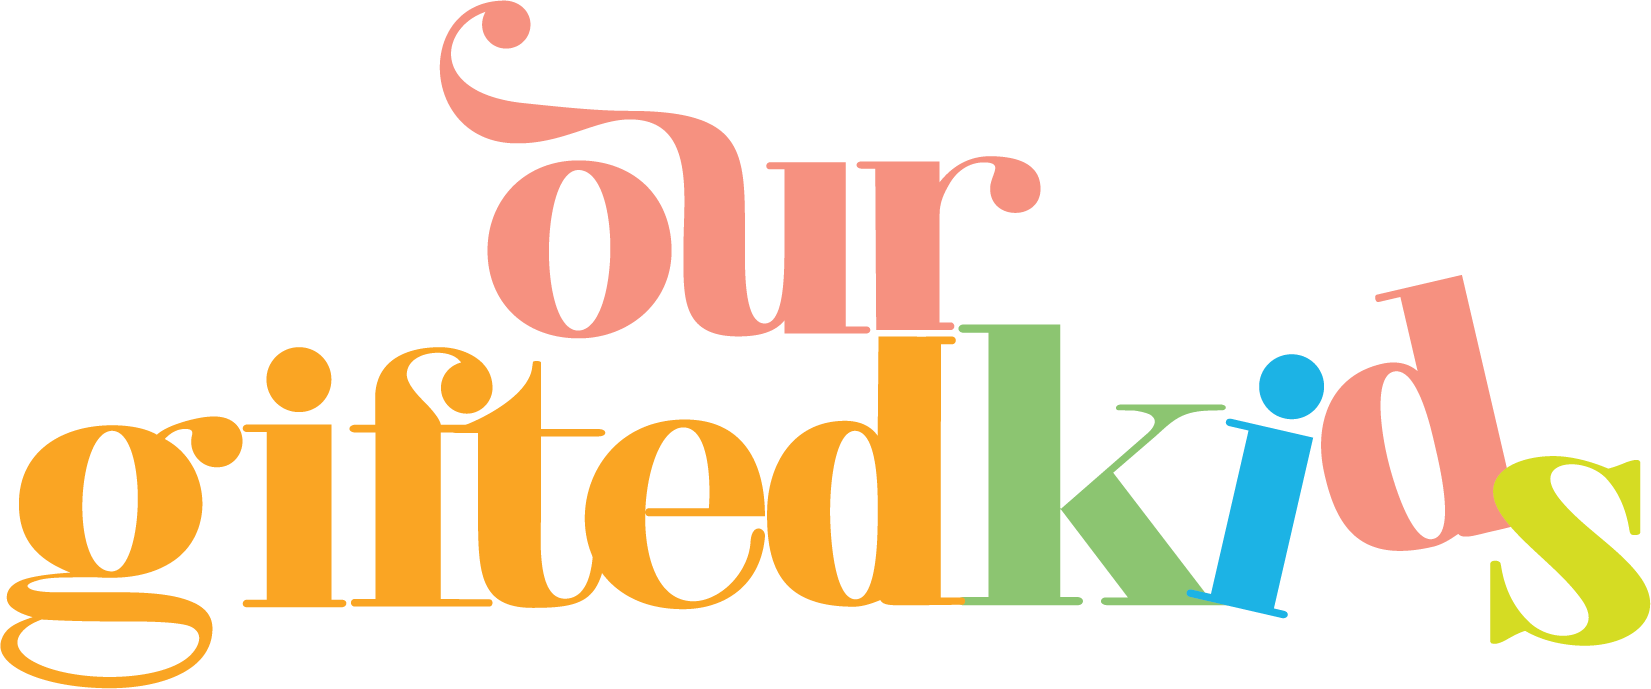 OurGiftedKids